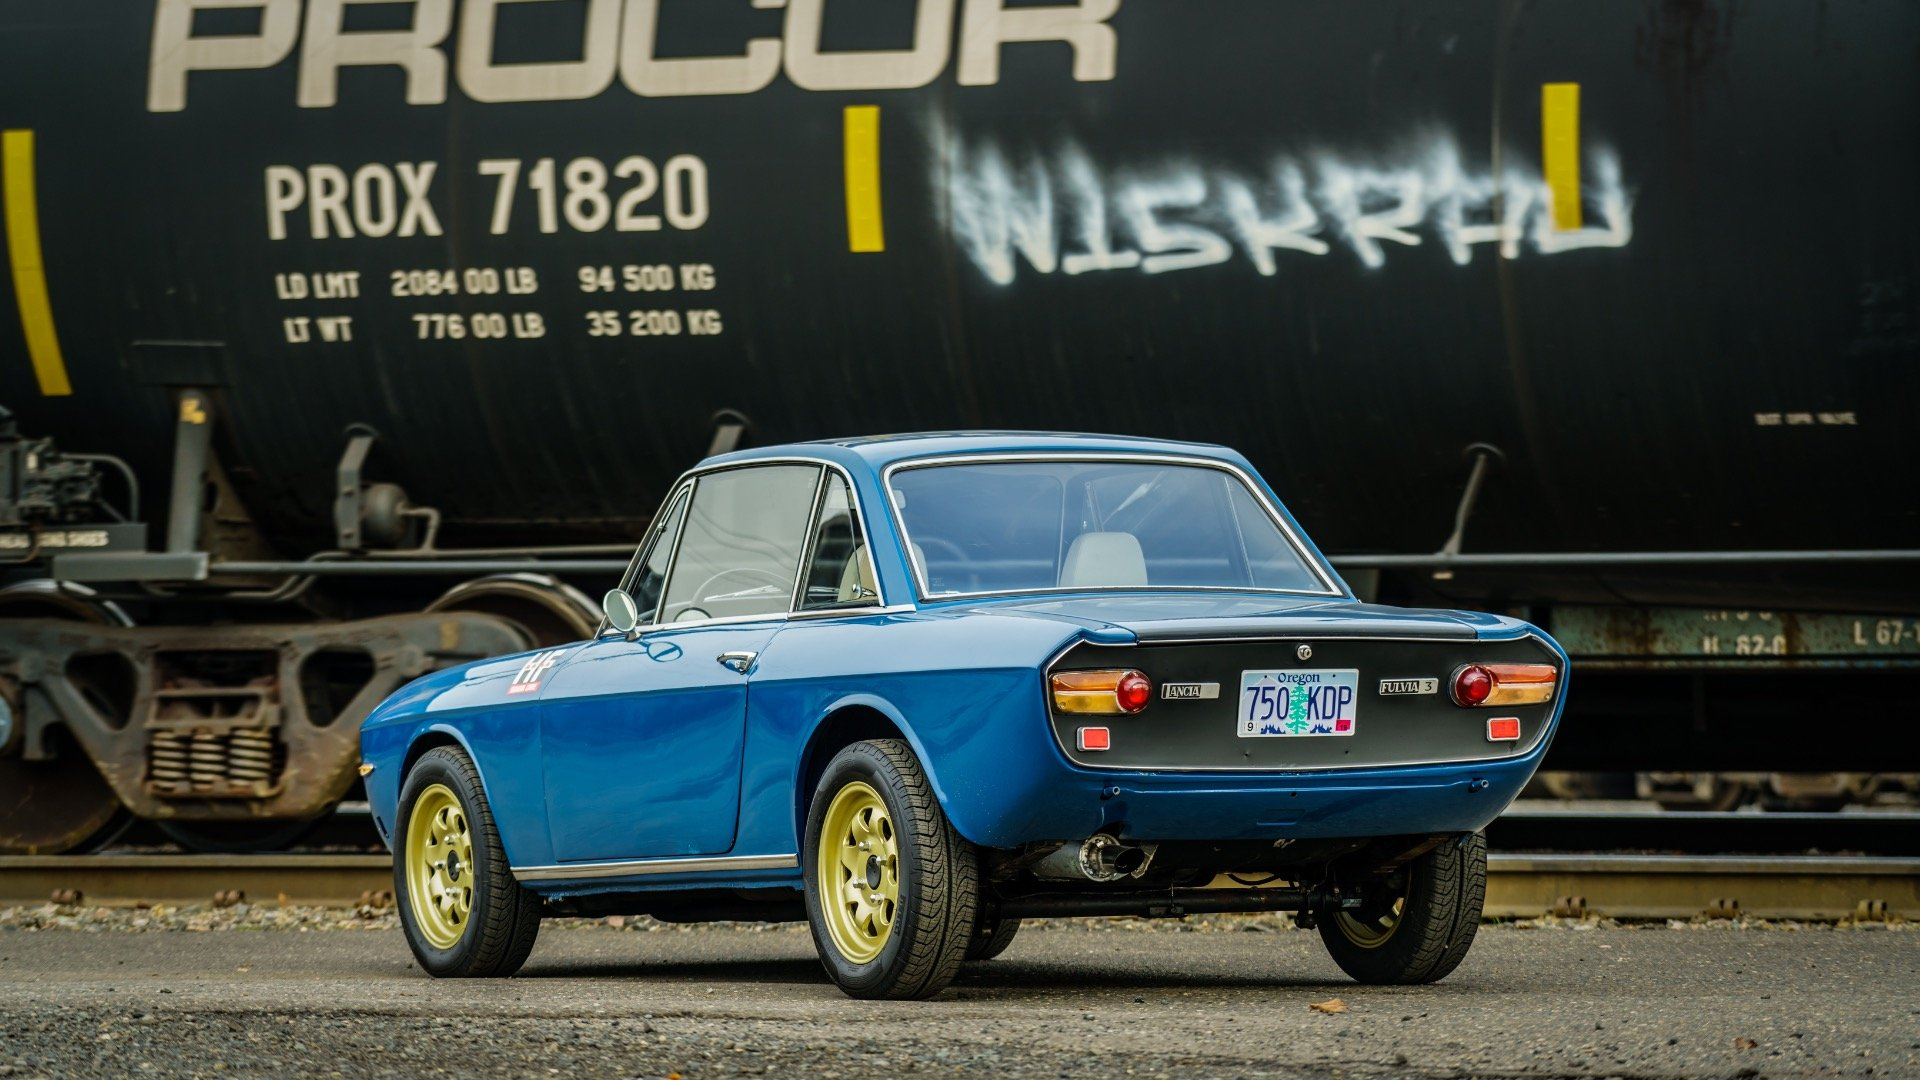 1974 Lancia Fulvia 1.3S = Blue Driver 5 speed 9k miles $23k For Sale (picture 3 of 6)